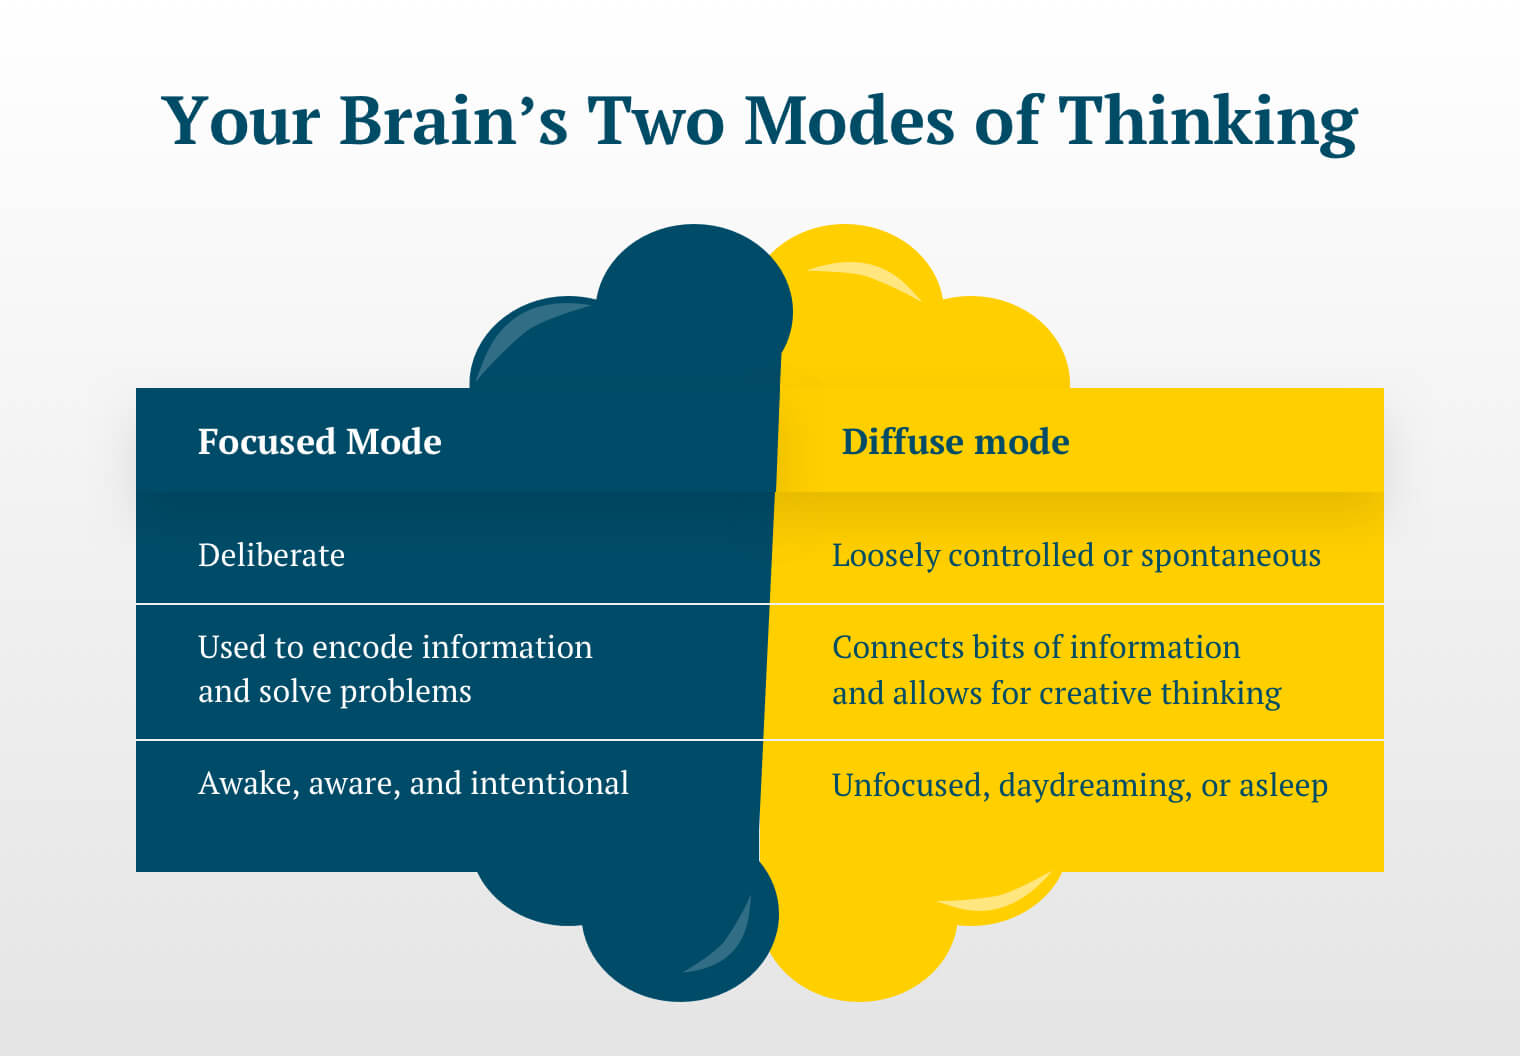 A chart listing the characteristics of the two modes of thinking, focused and diffuse. The text reads as follows: Focused Mode; Deliberate; Used to encode information and solve problems; Awake, aware, and intentional.  Diffuse mode: Loosely controlled or spontaneous; Connects bits of information and allows for creative thinking; Unfocused, daydreaming, or asleep